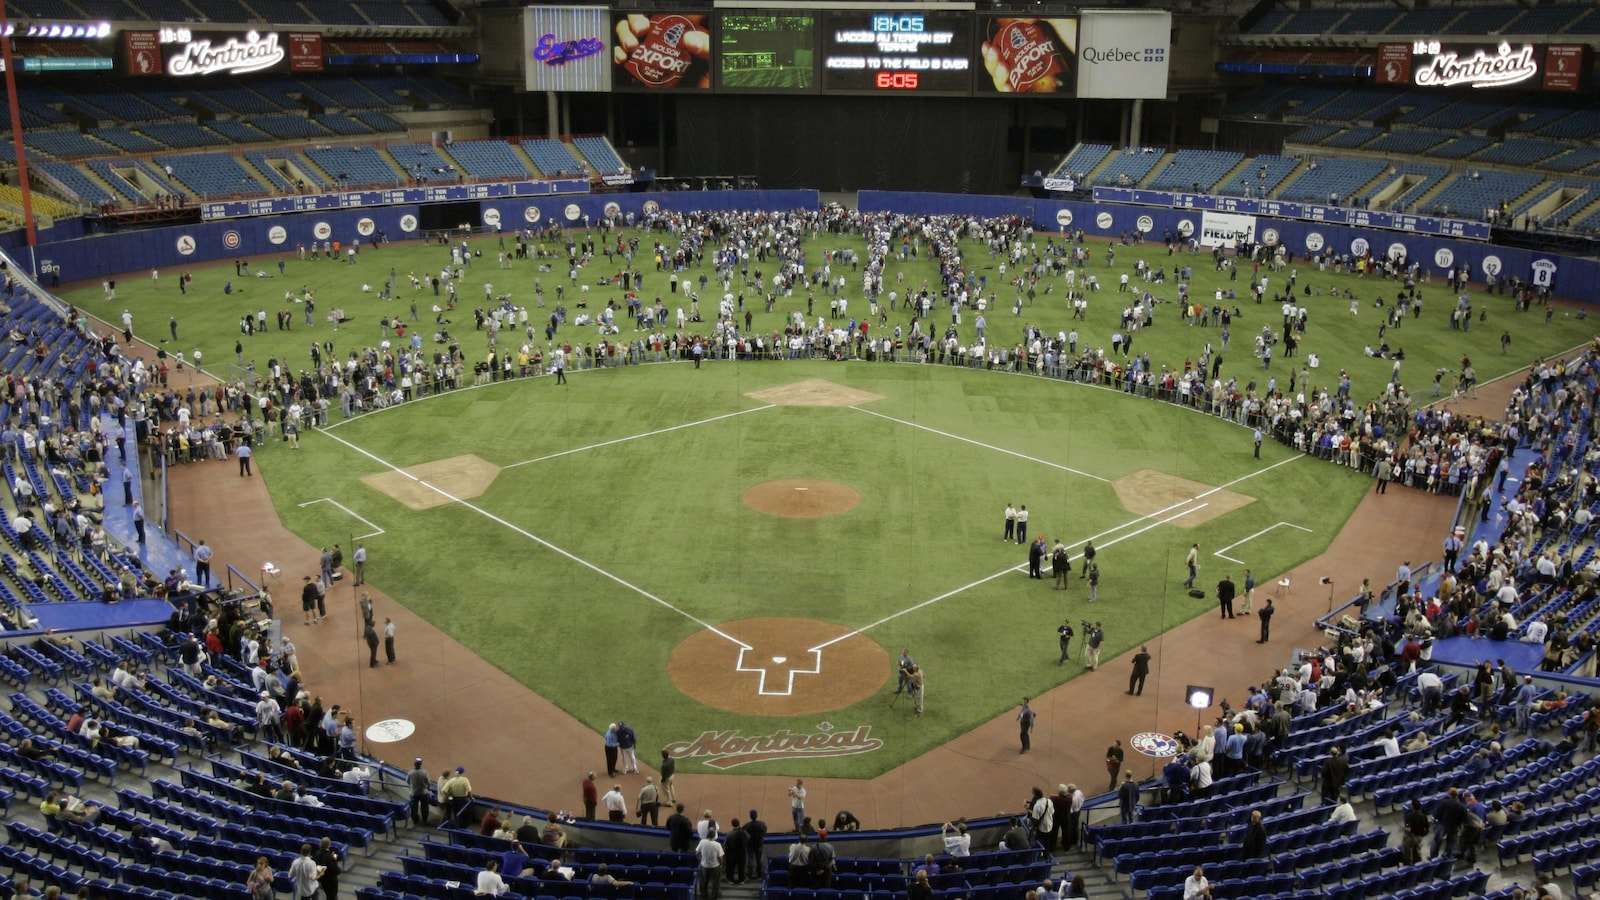 Les Expos Rays En Garde Partagee Quelle Mauvaise Idee Ici Radio